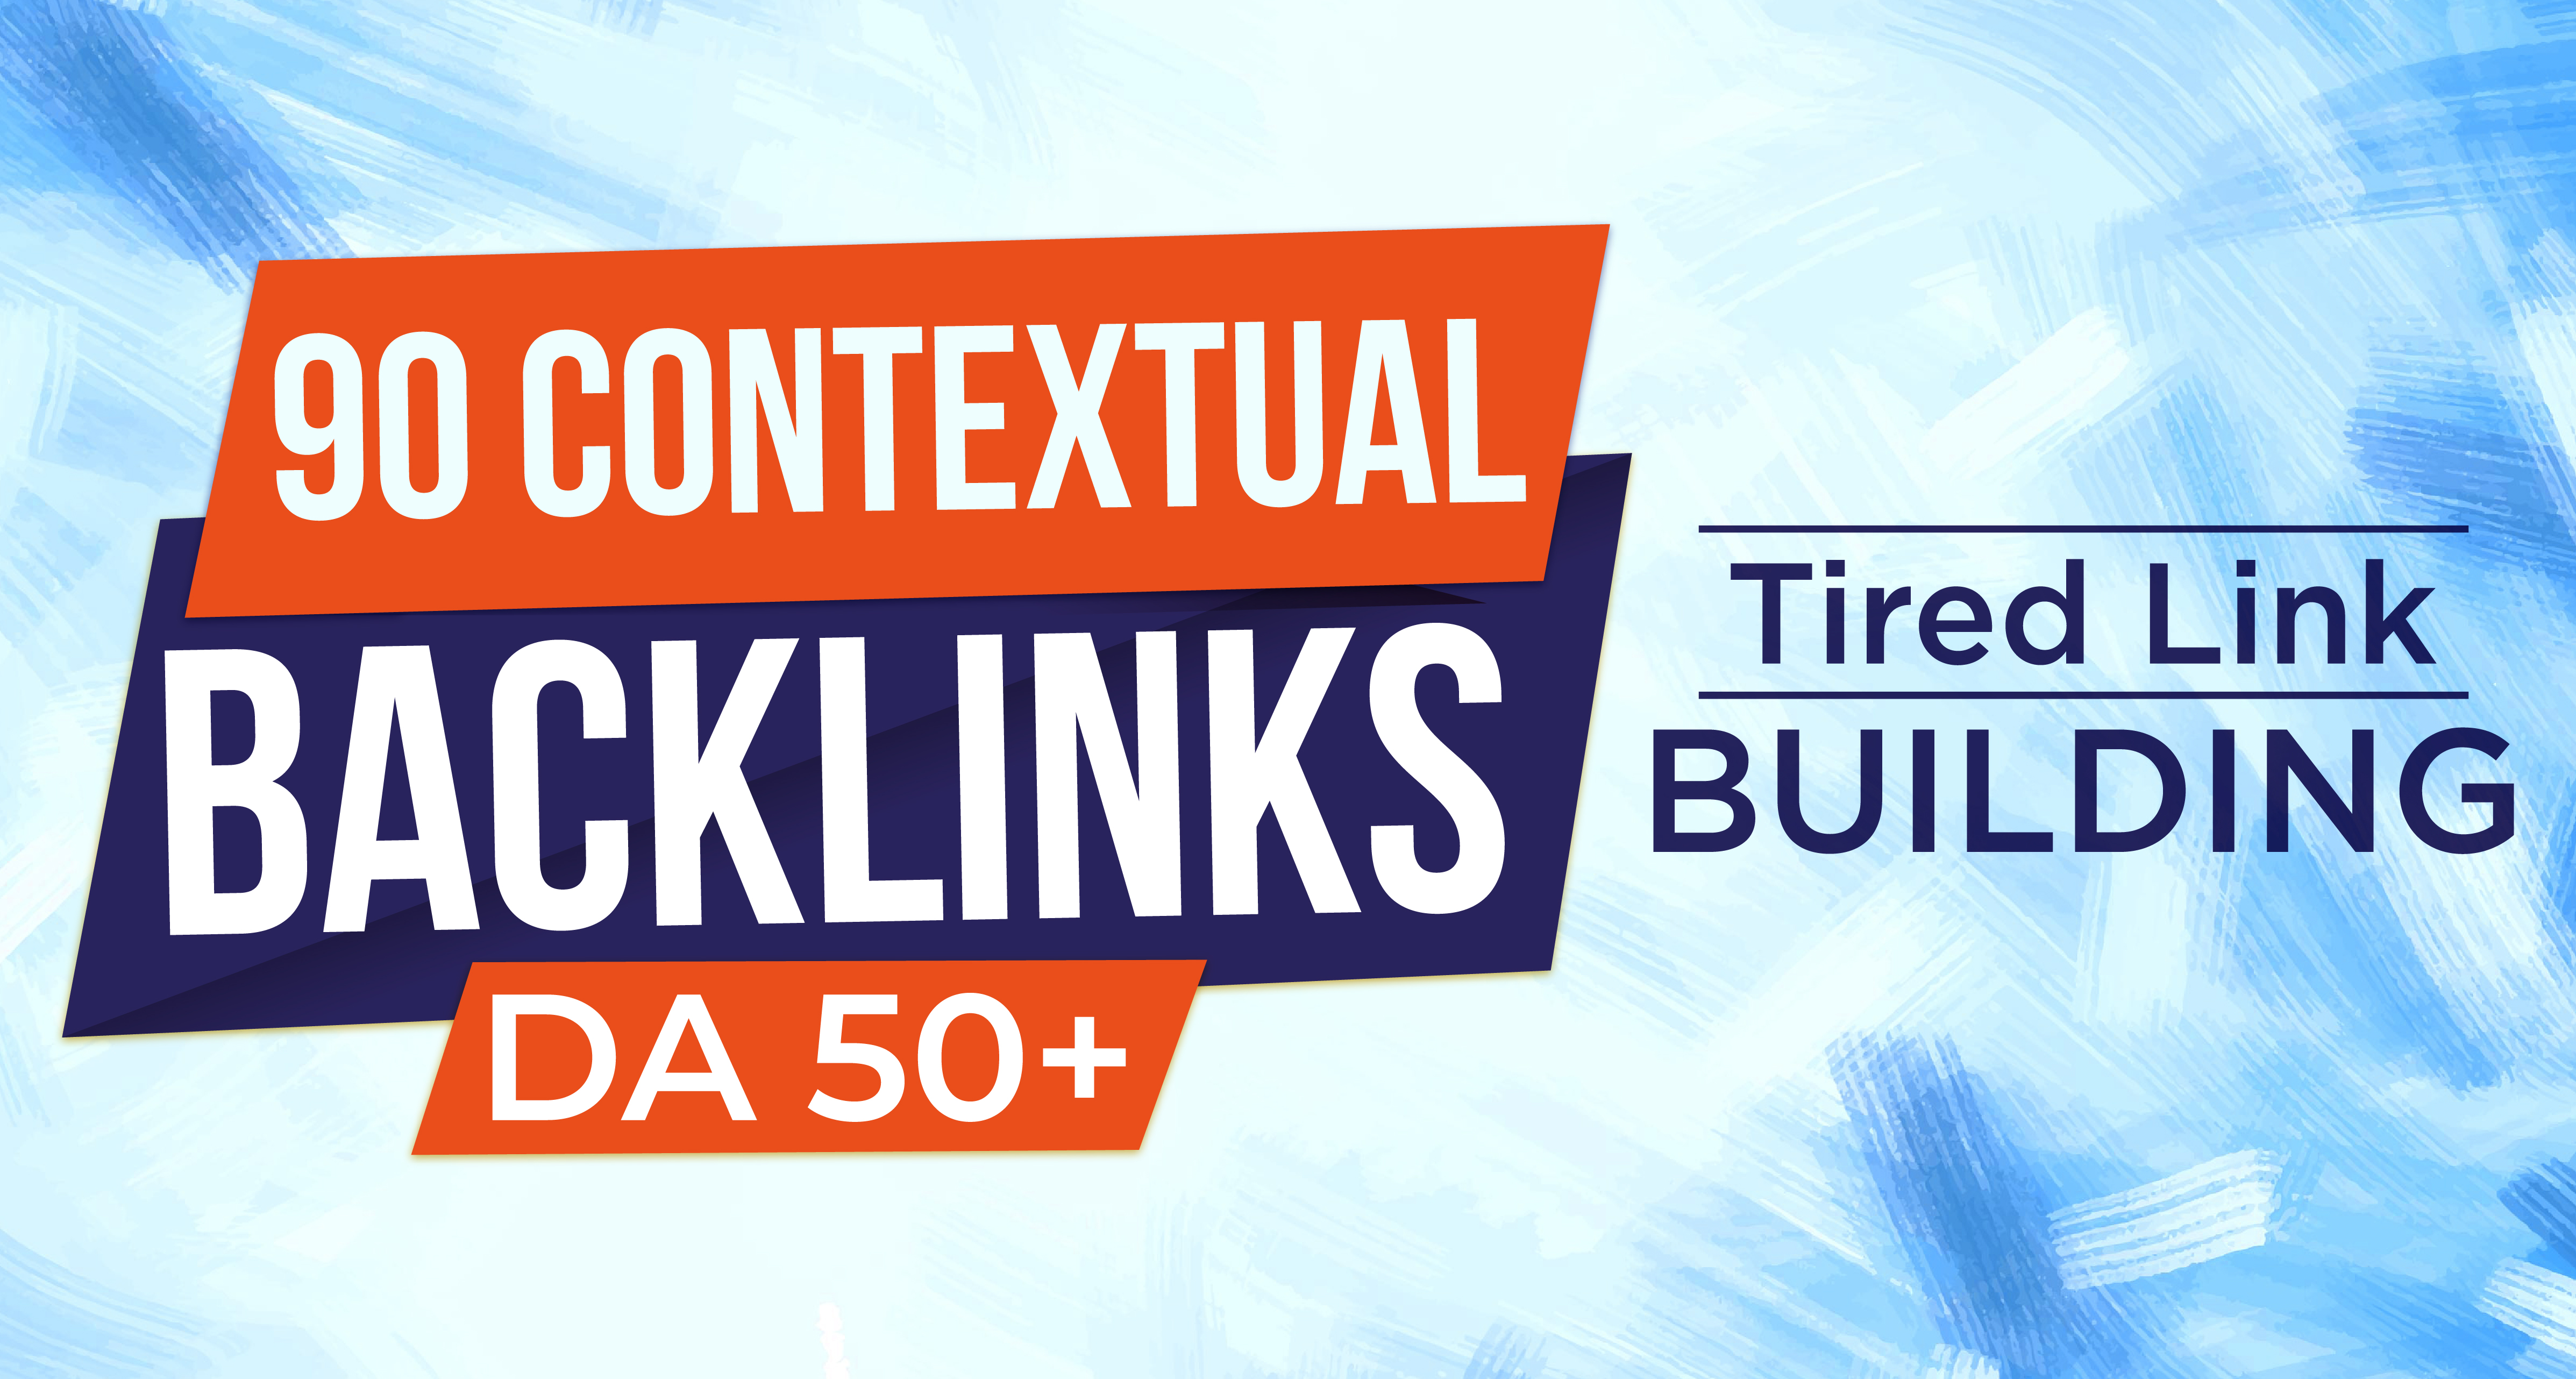 I will 90 contextual Backlinks DA50+ with Tired Link Building